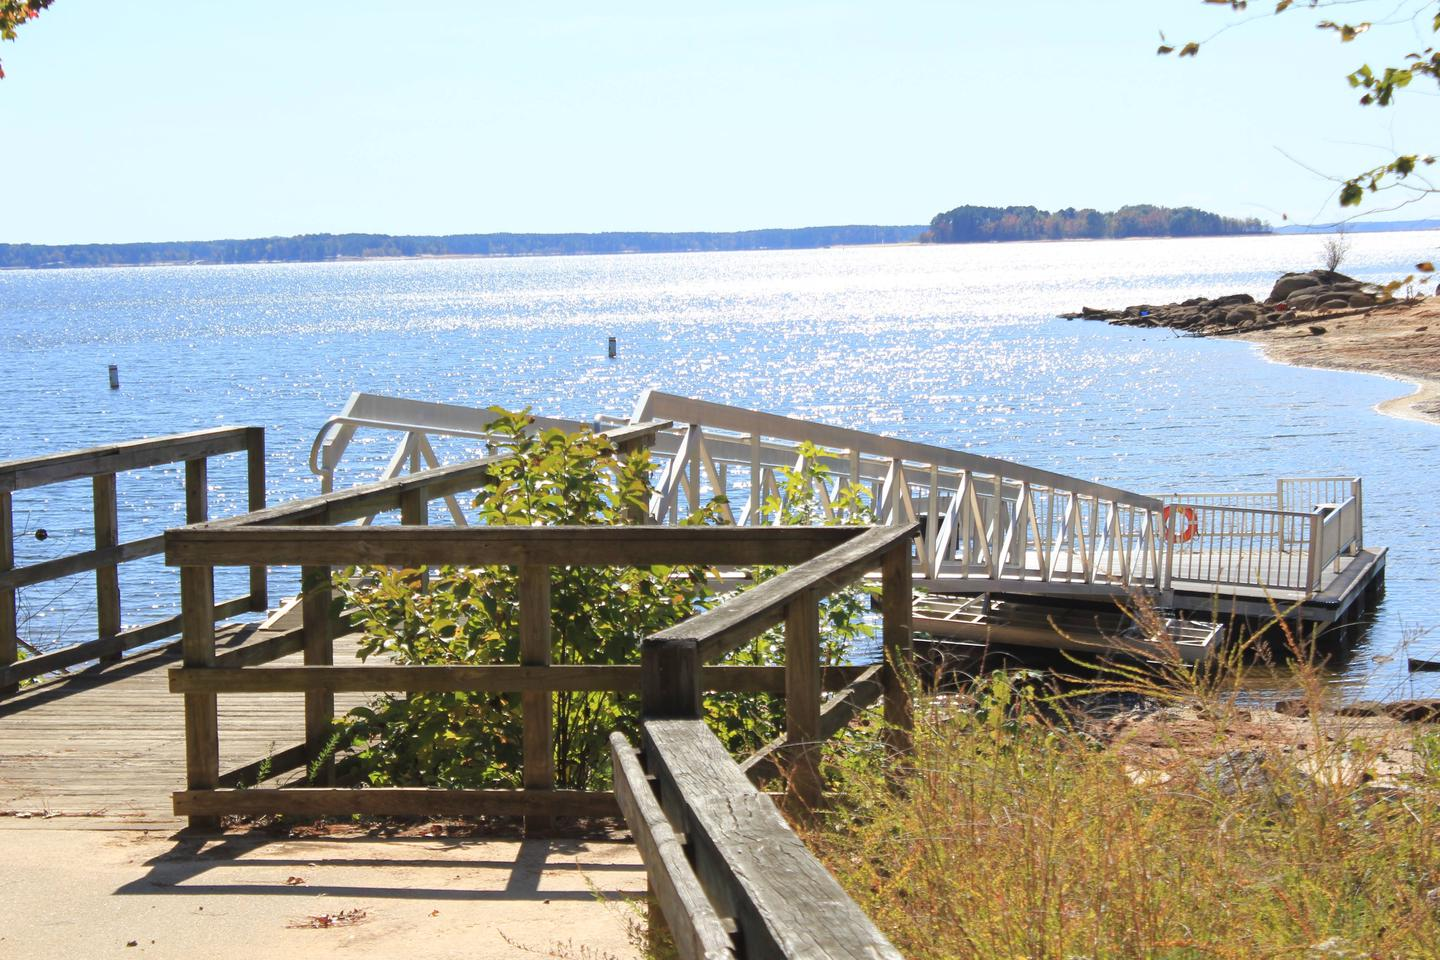 NBP Fishing PierWelcome to North Bend Park! This is the Handicap Fishing Pier located beside the Osage Picnic Area. This fishing pier is handicap accessible.